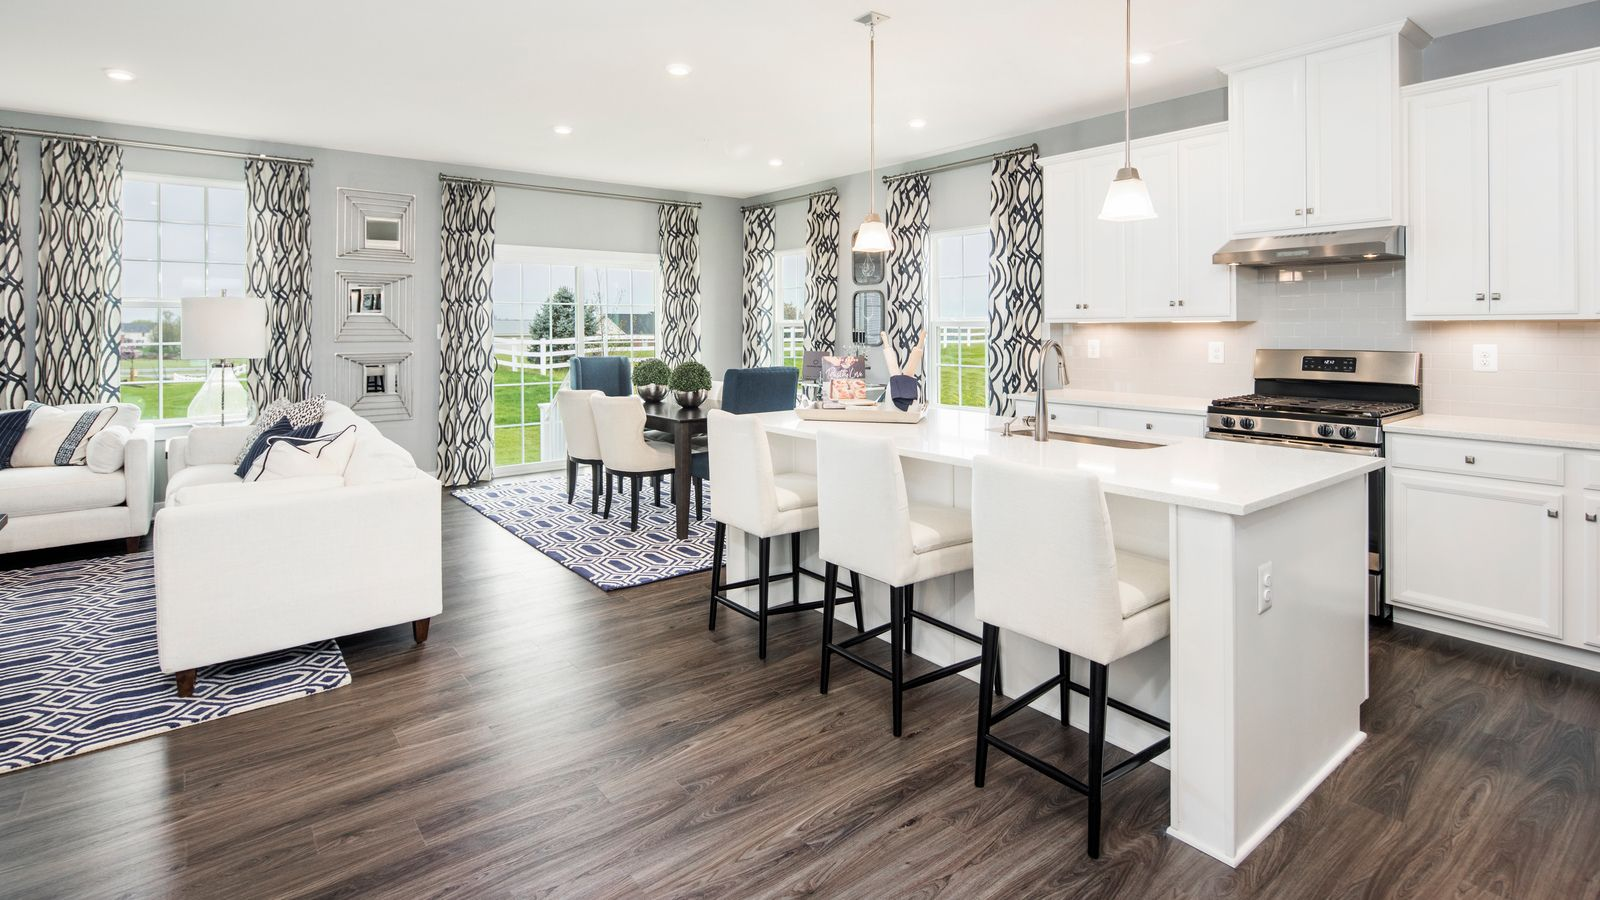 Kitchen featured in the Ashbrooke By Ryan Homes in Pittsburgh, PA